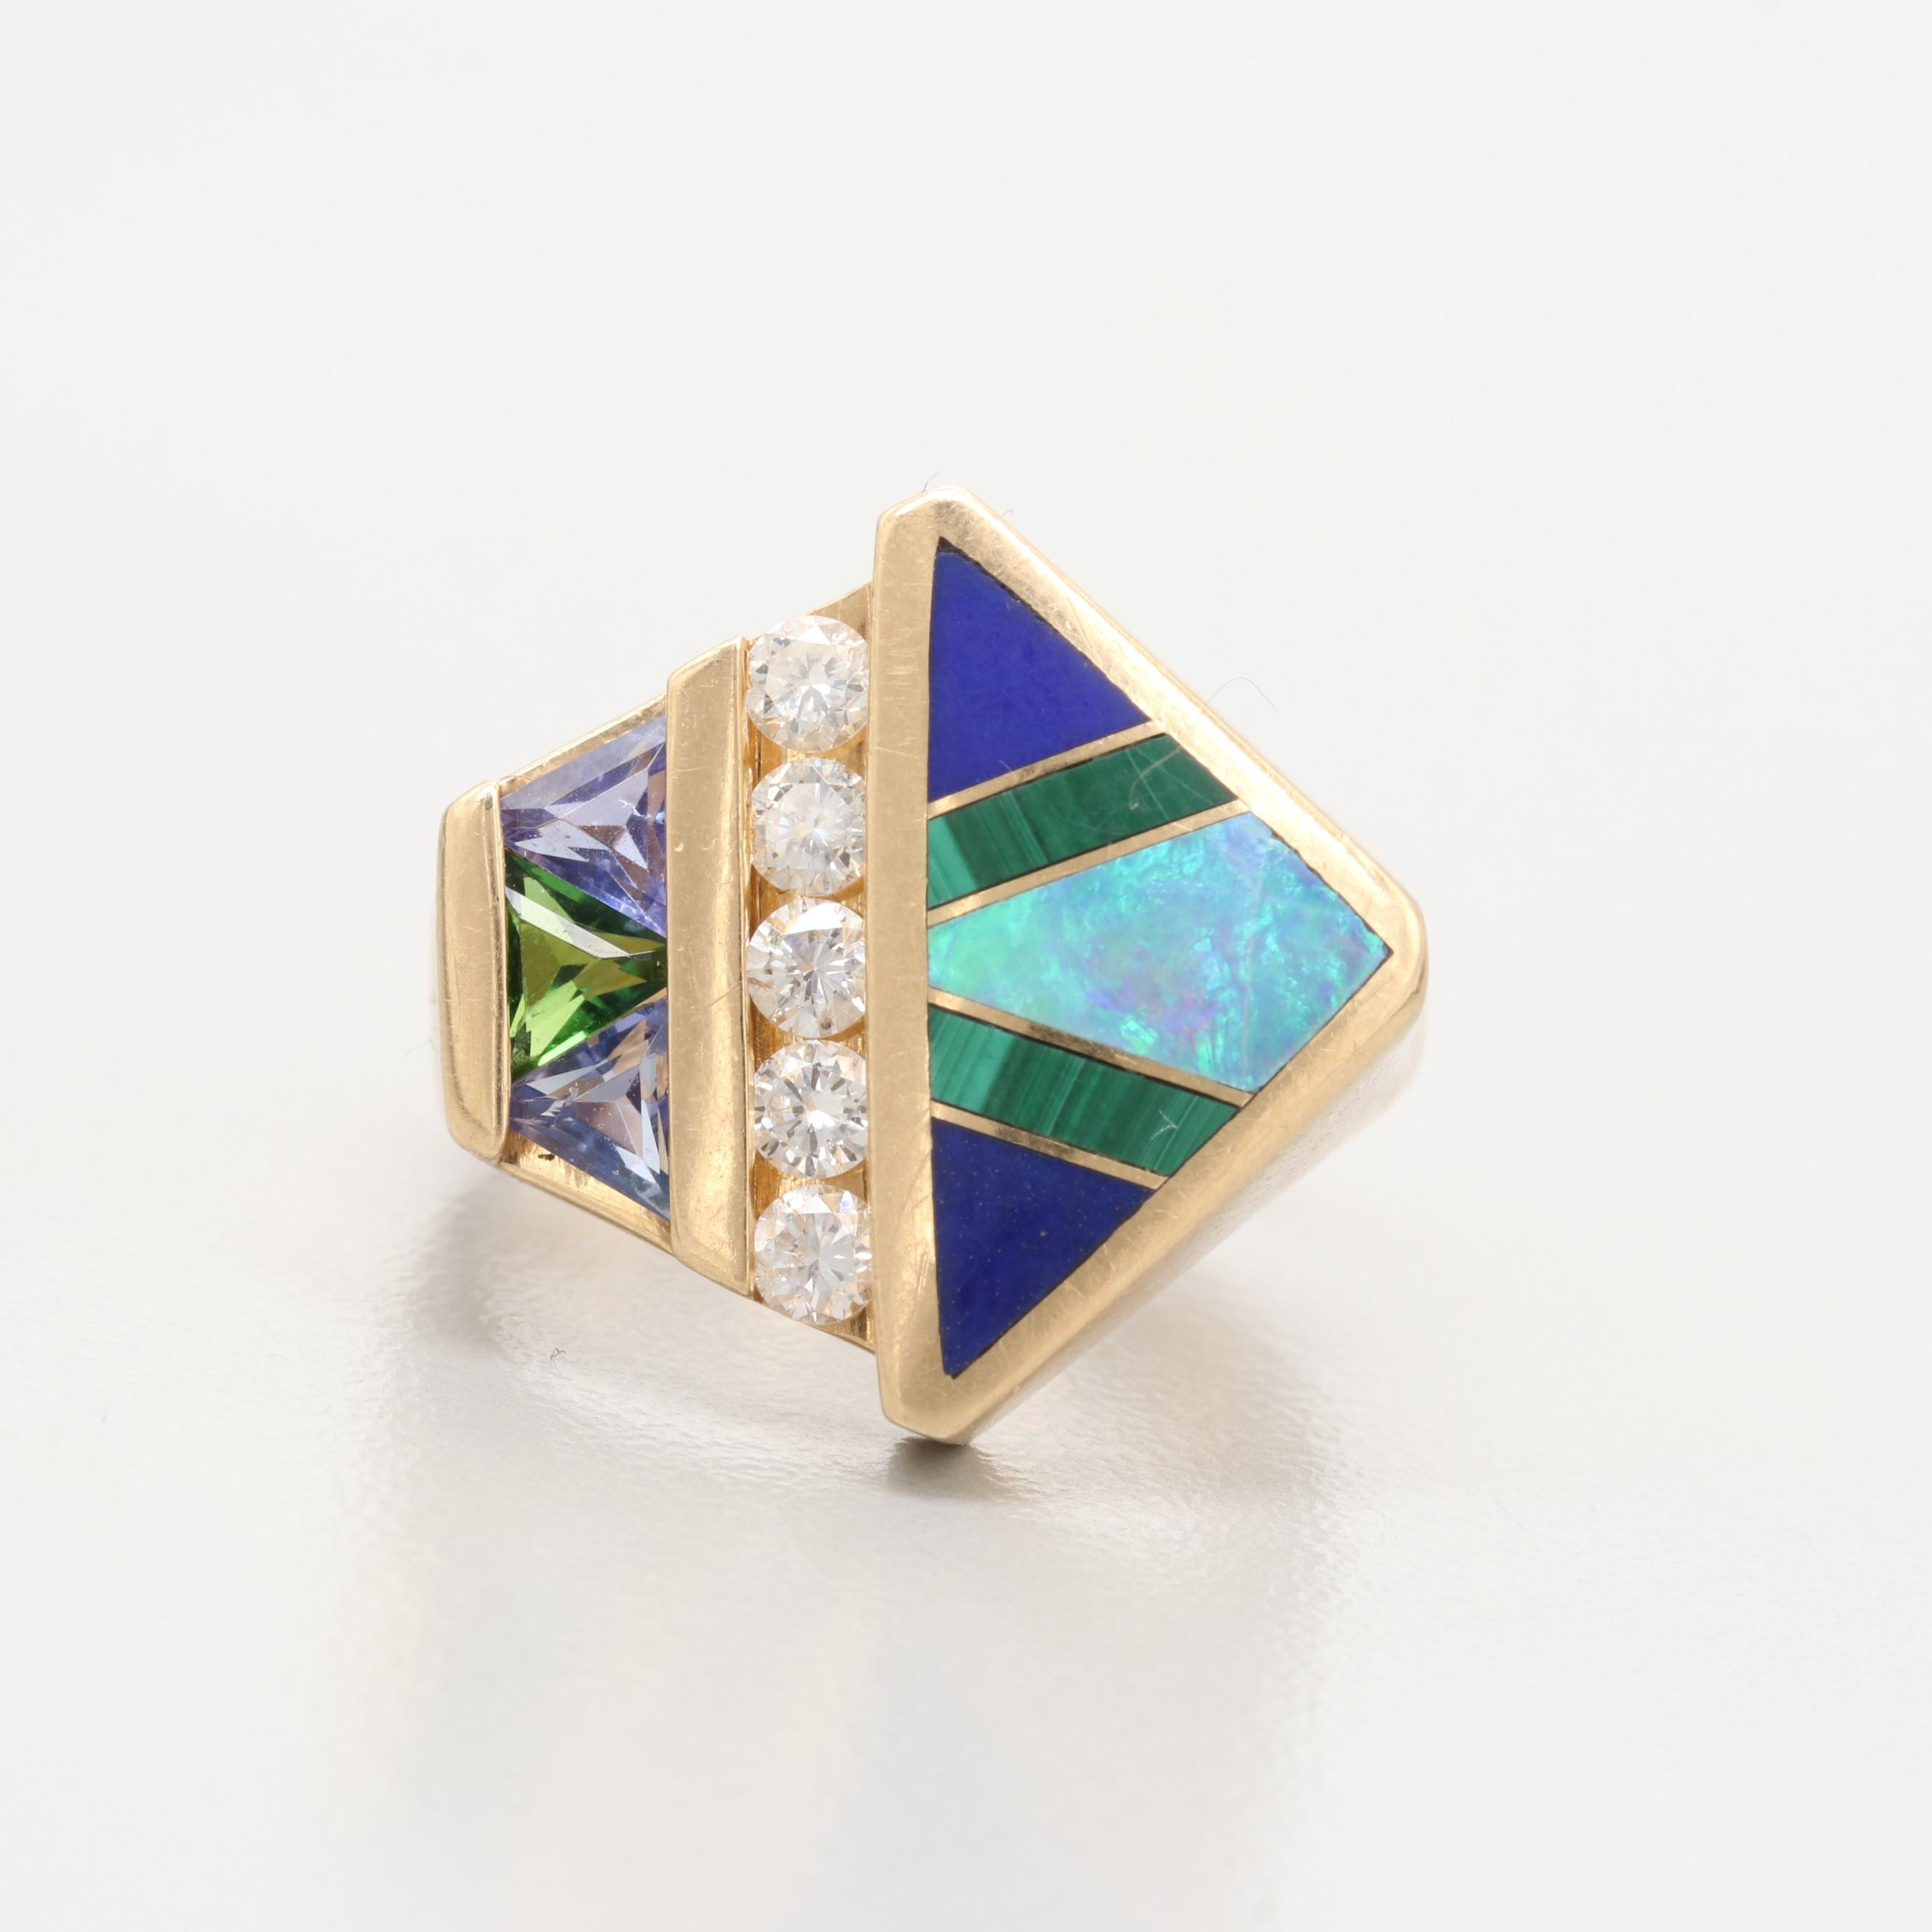 14K Yellow Gold Tanzanite, Diamond and Gemstone Inlay Ring